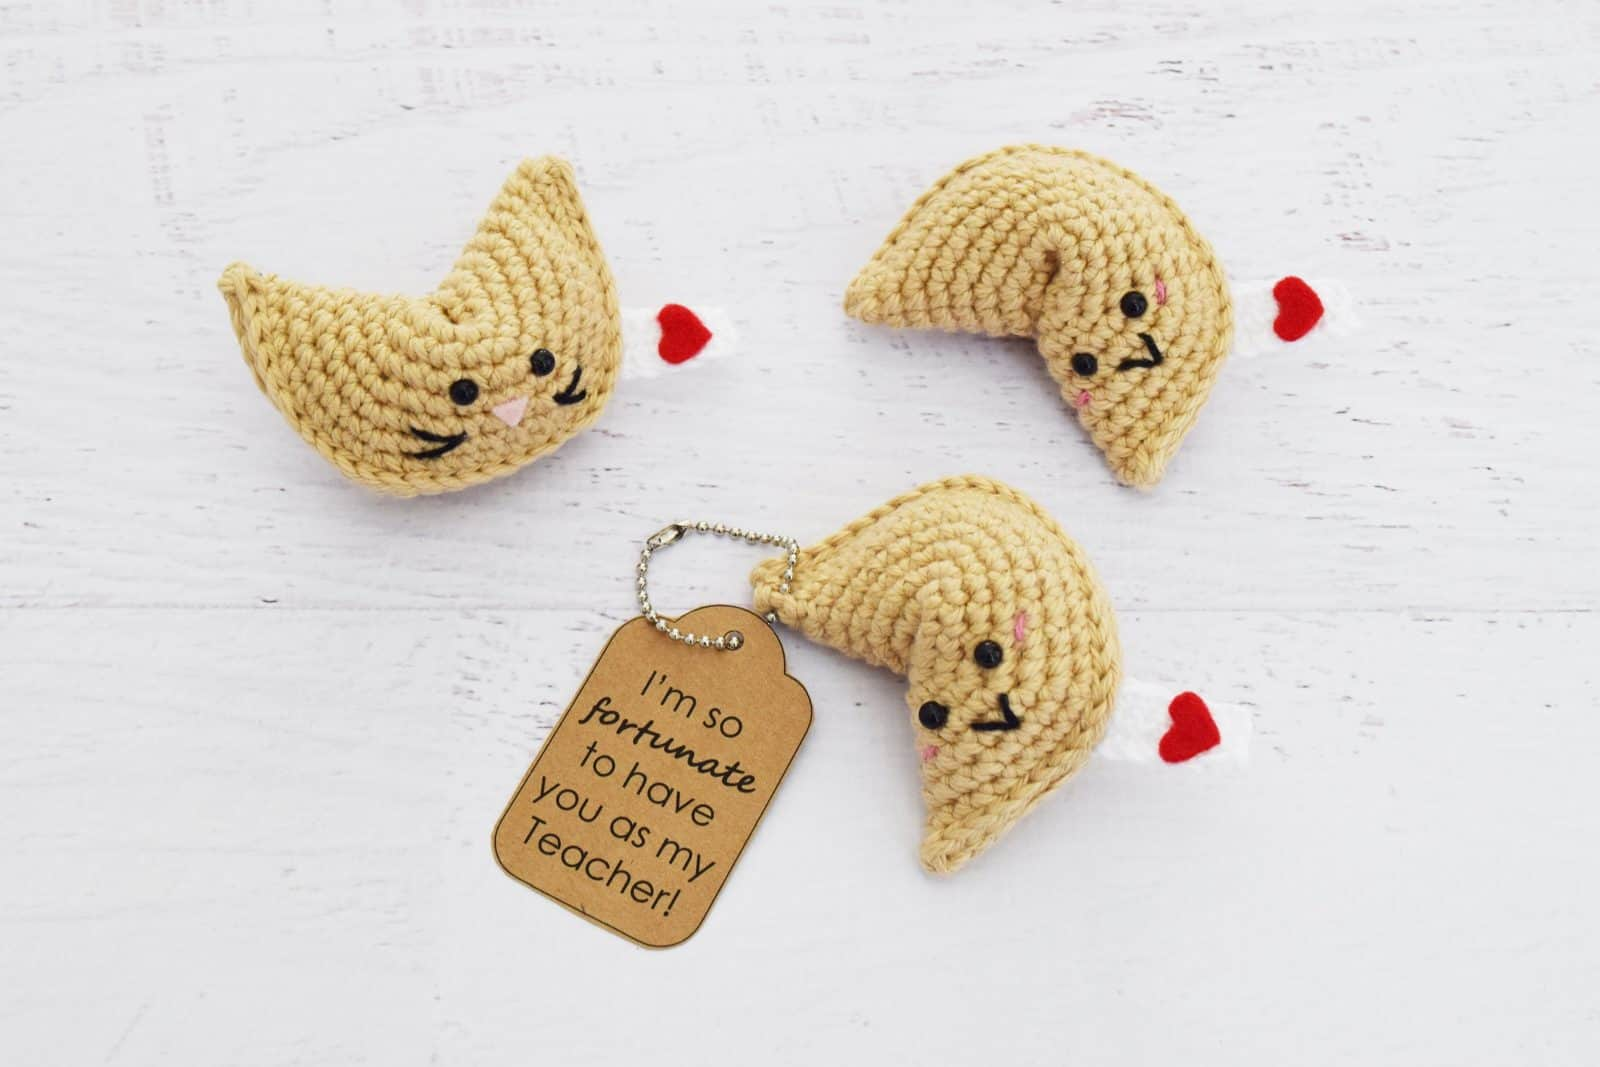 Fortune cookie keychain crochet pattern